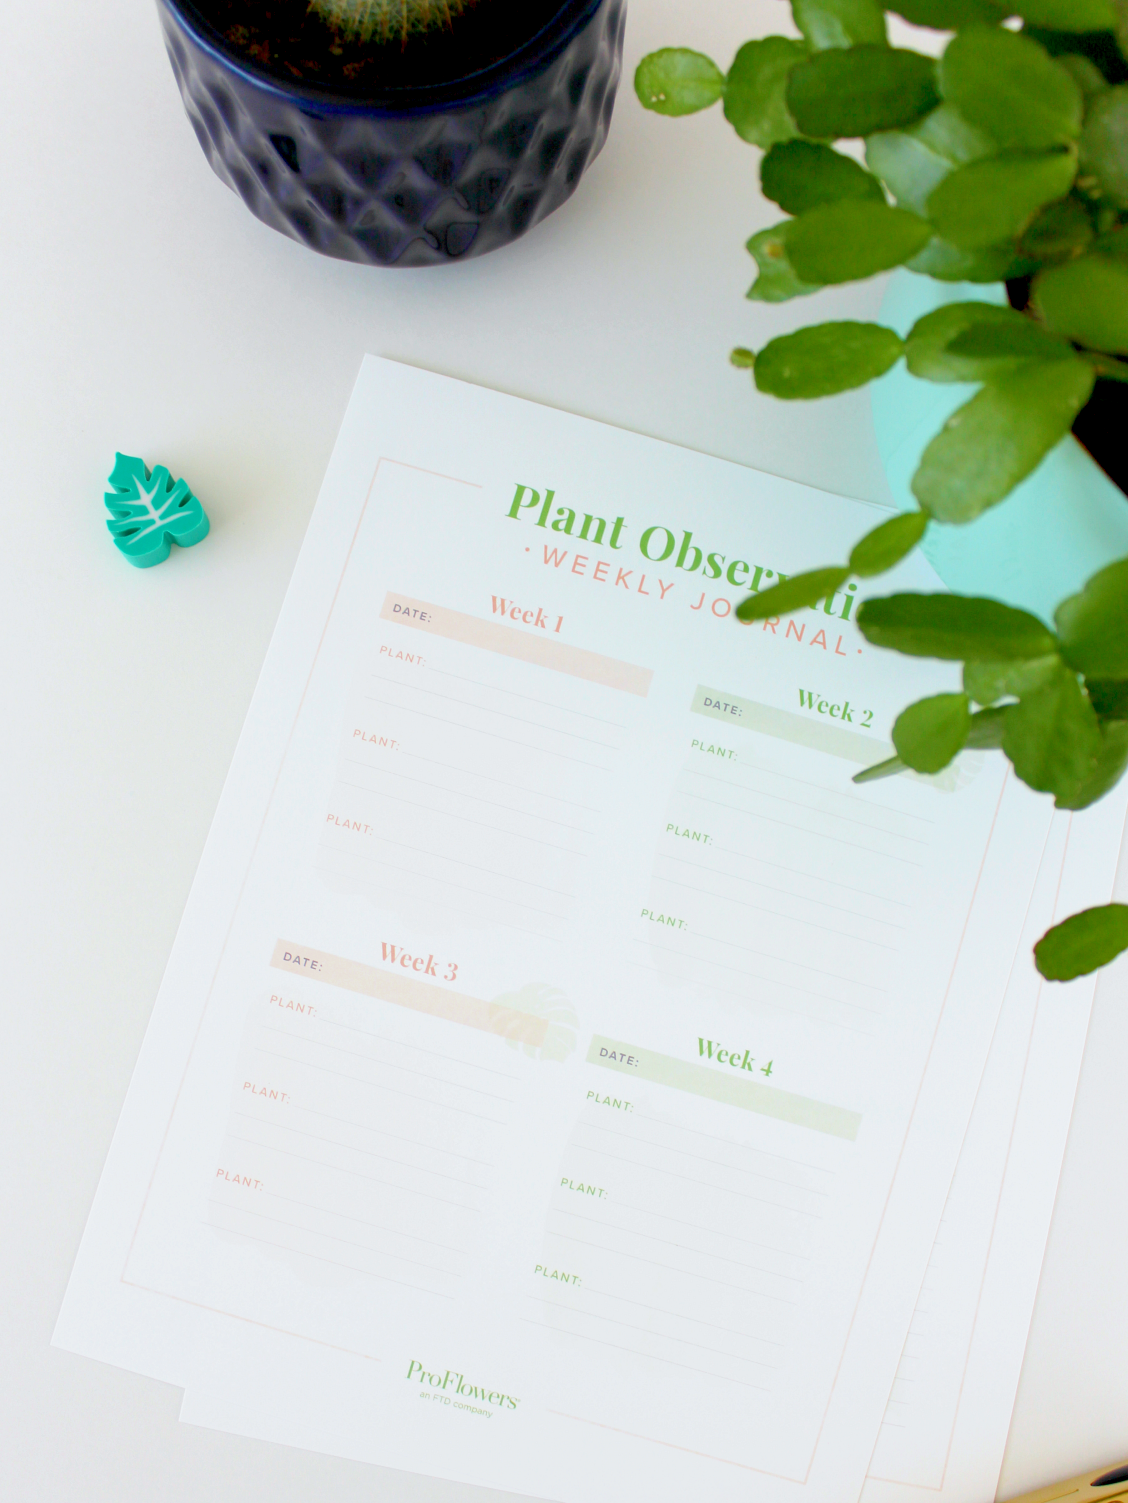 HOW TO CARE FOR YOUR HOUSE PLANTS (+ FREE PRINTABLES)